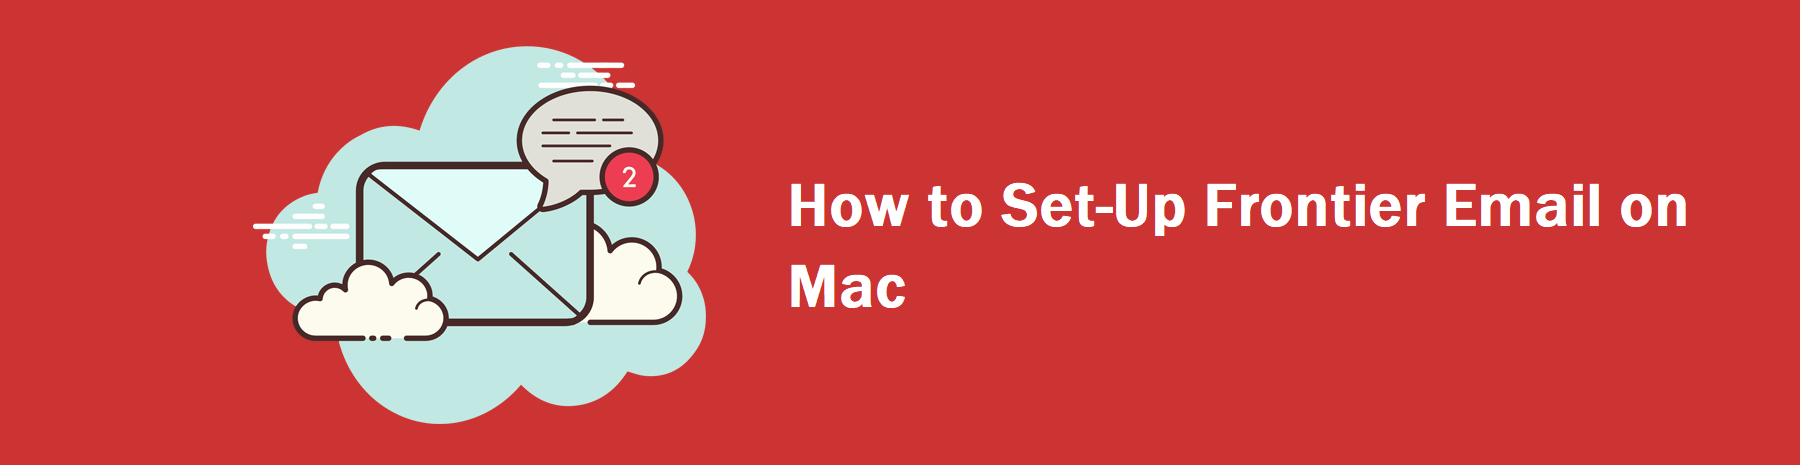 How to Set Up Frontier Email on Mac, frontier mail setup mac,